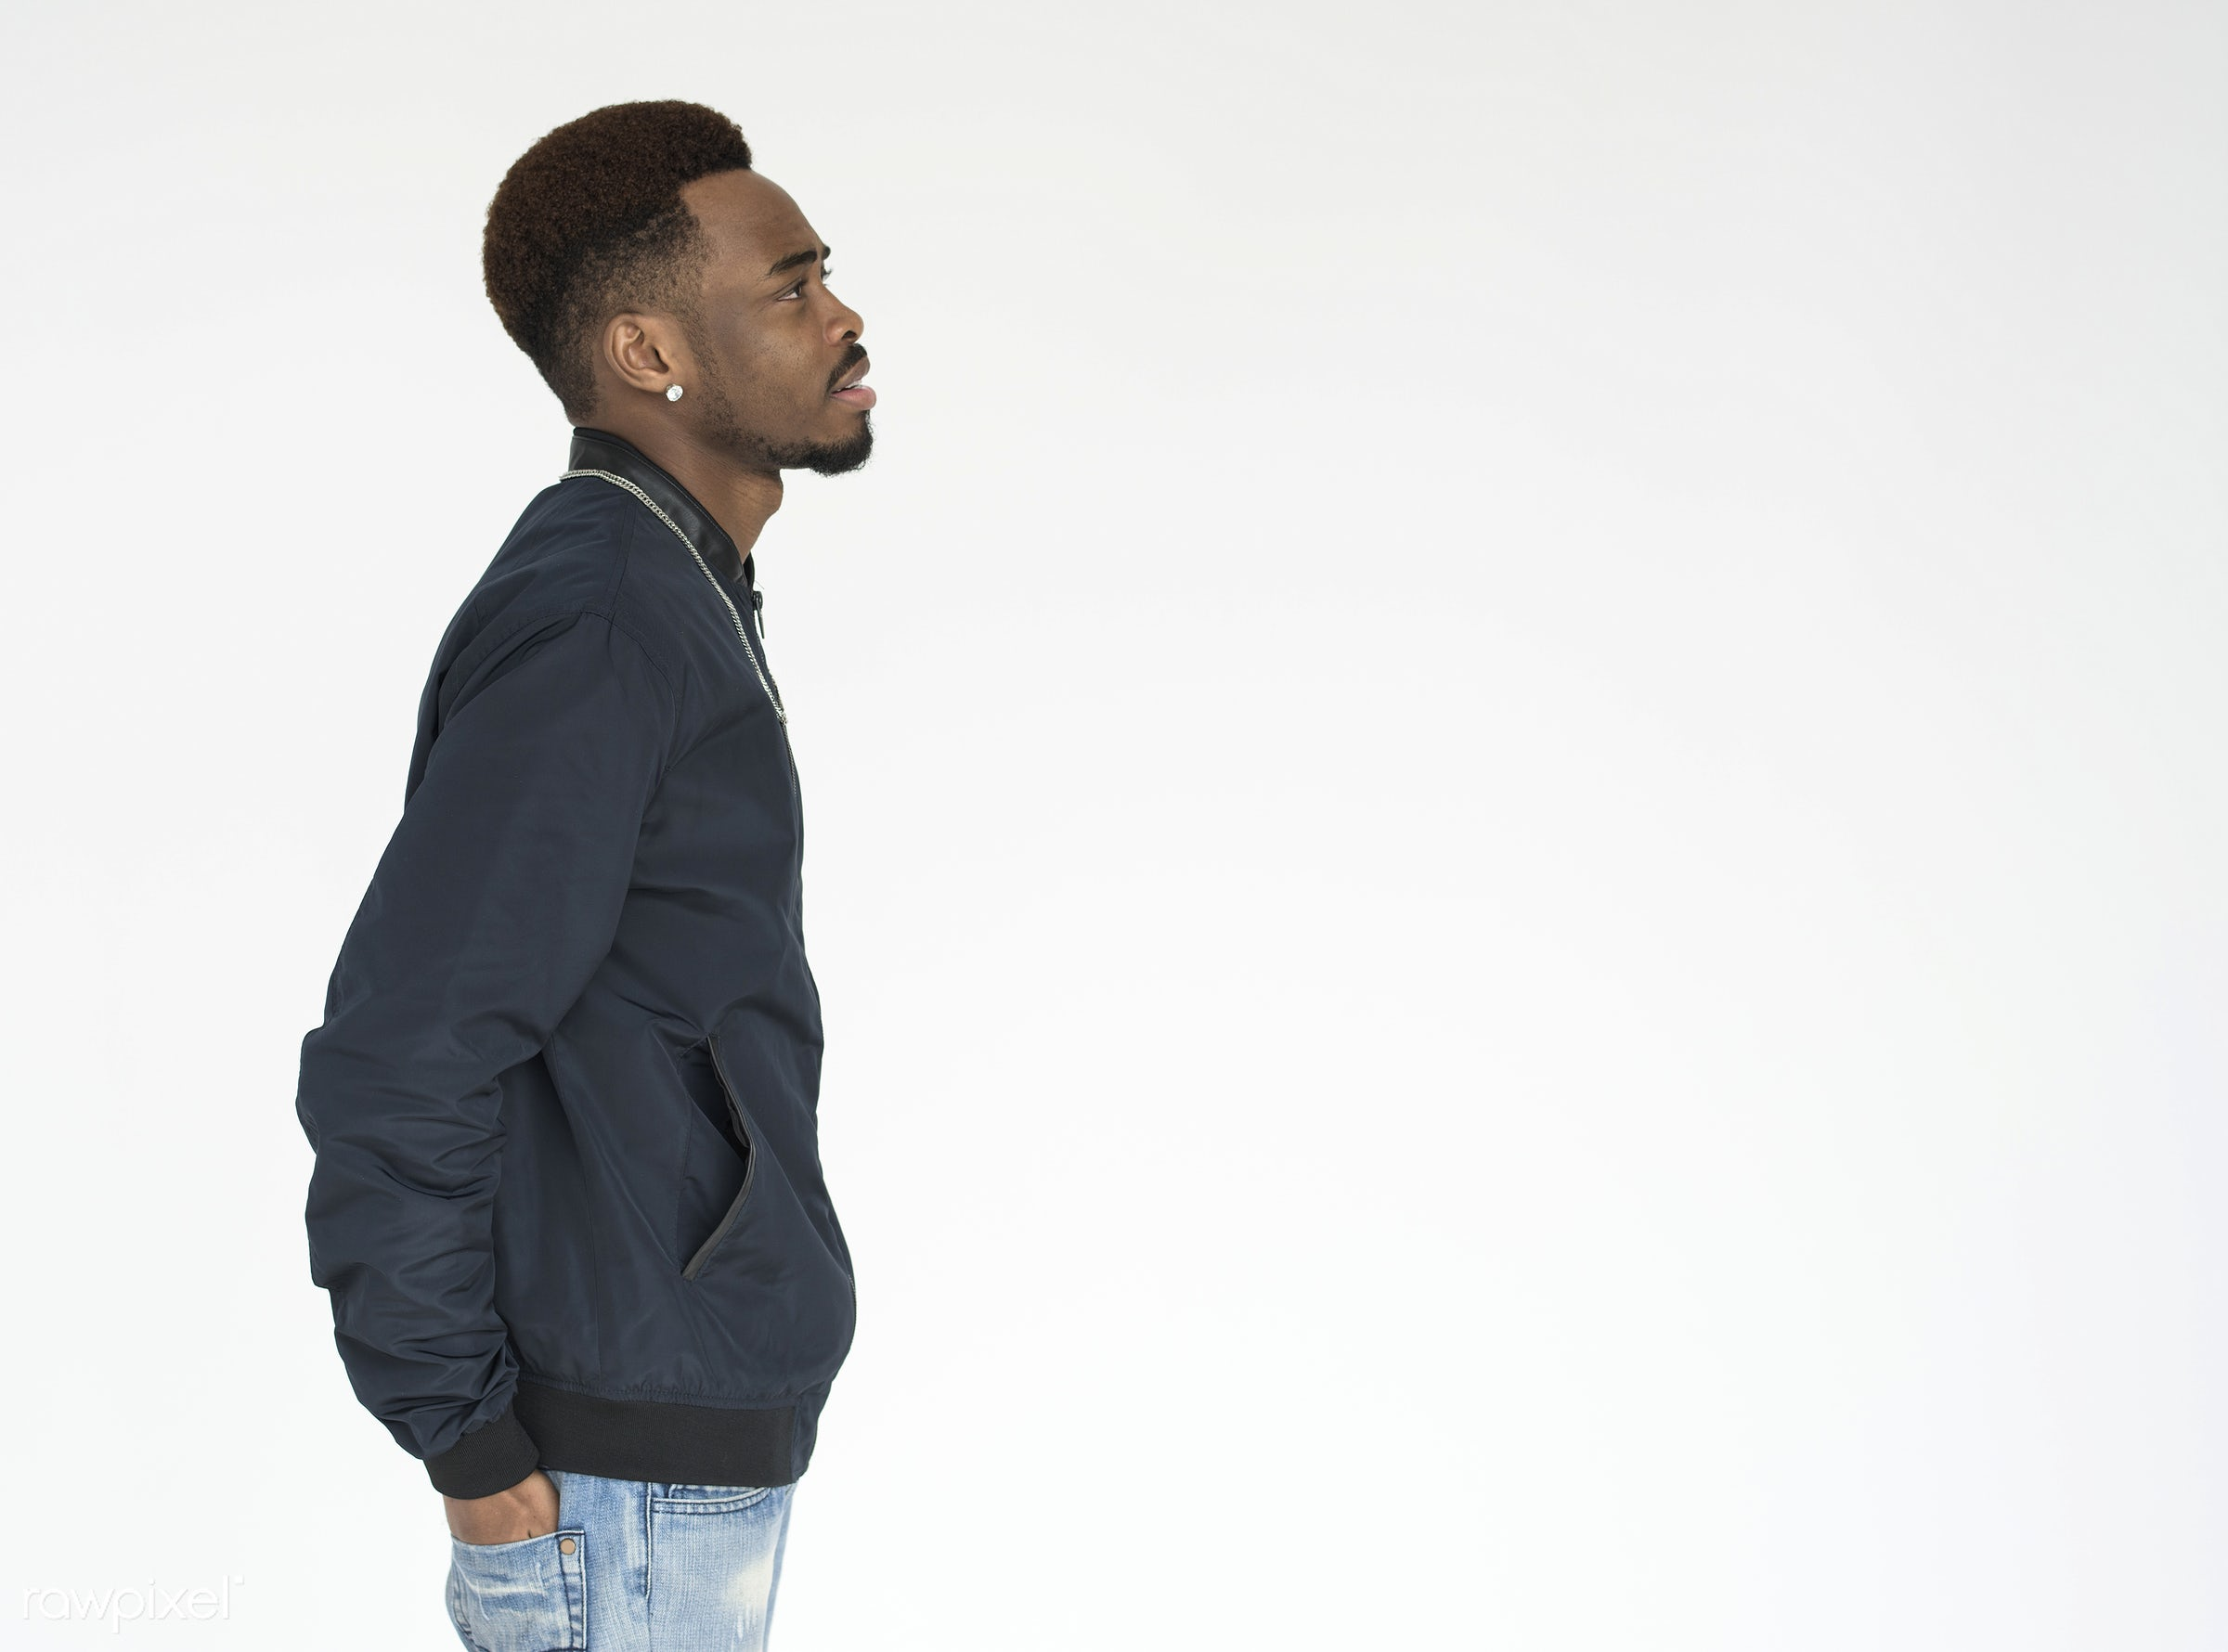 studio, person, one, side view, people, race, style, hands, lifestyle, casual, man, black, profile, isolated, half body, guy...